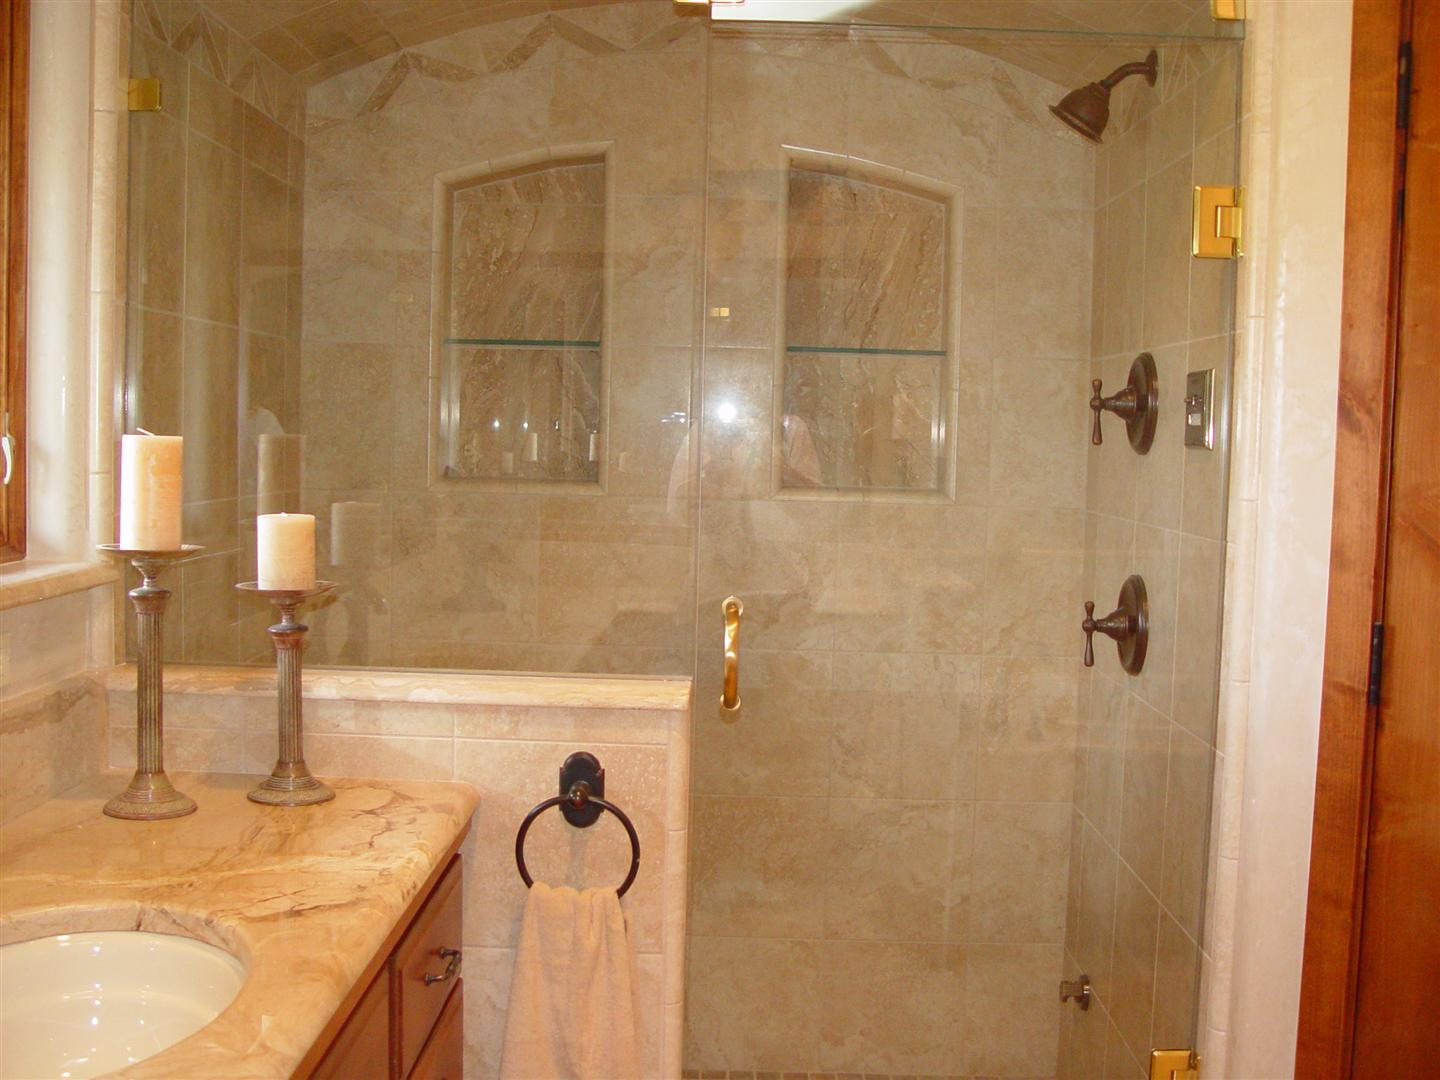 Kitchen design and build contractor in durango colorado for Bathroom ideas earth tones